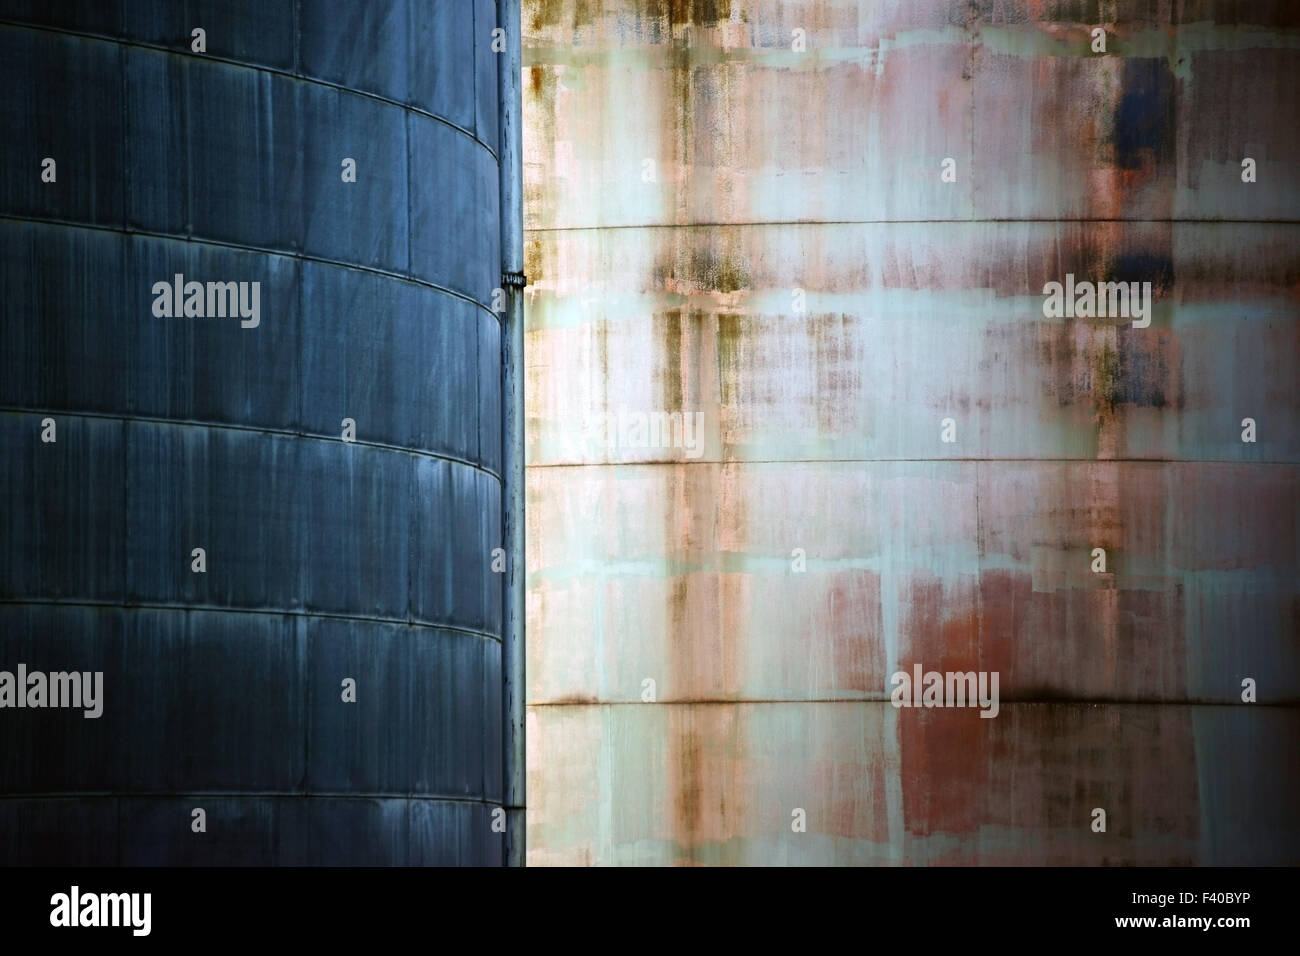 Metal surfaces in contrast - Stock Image